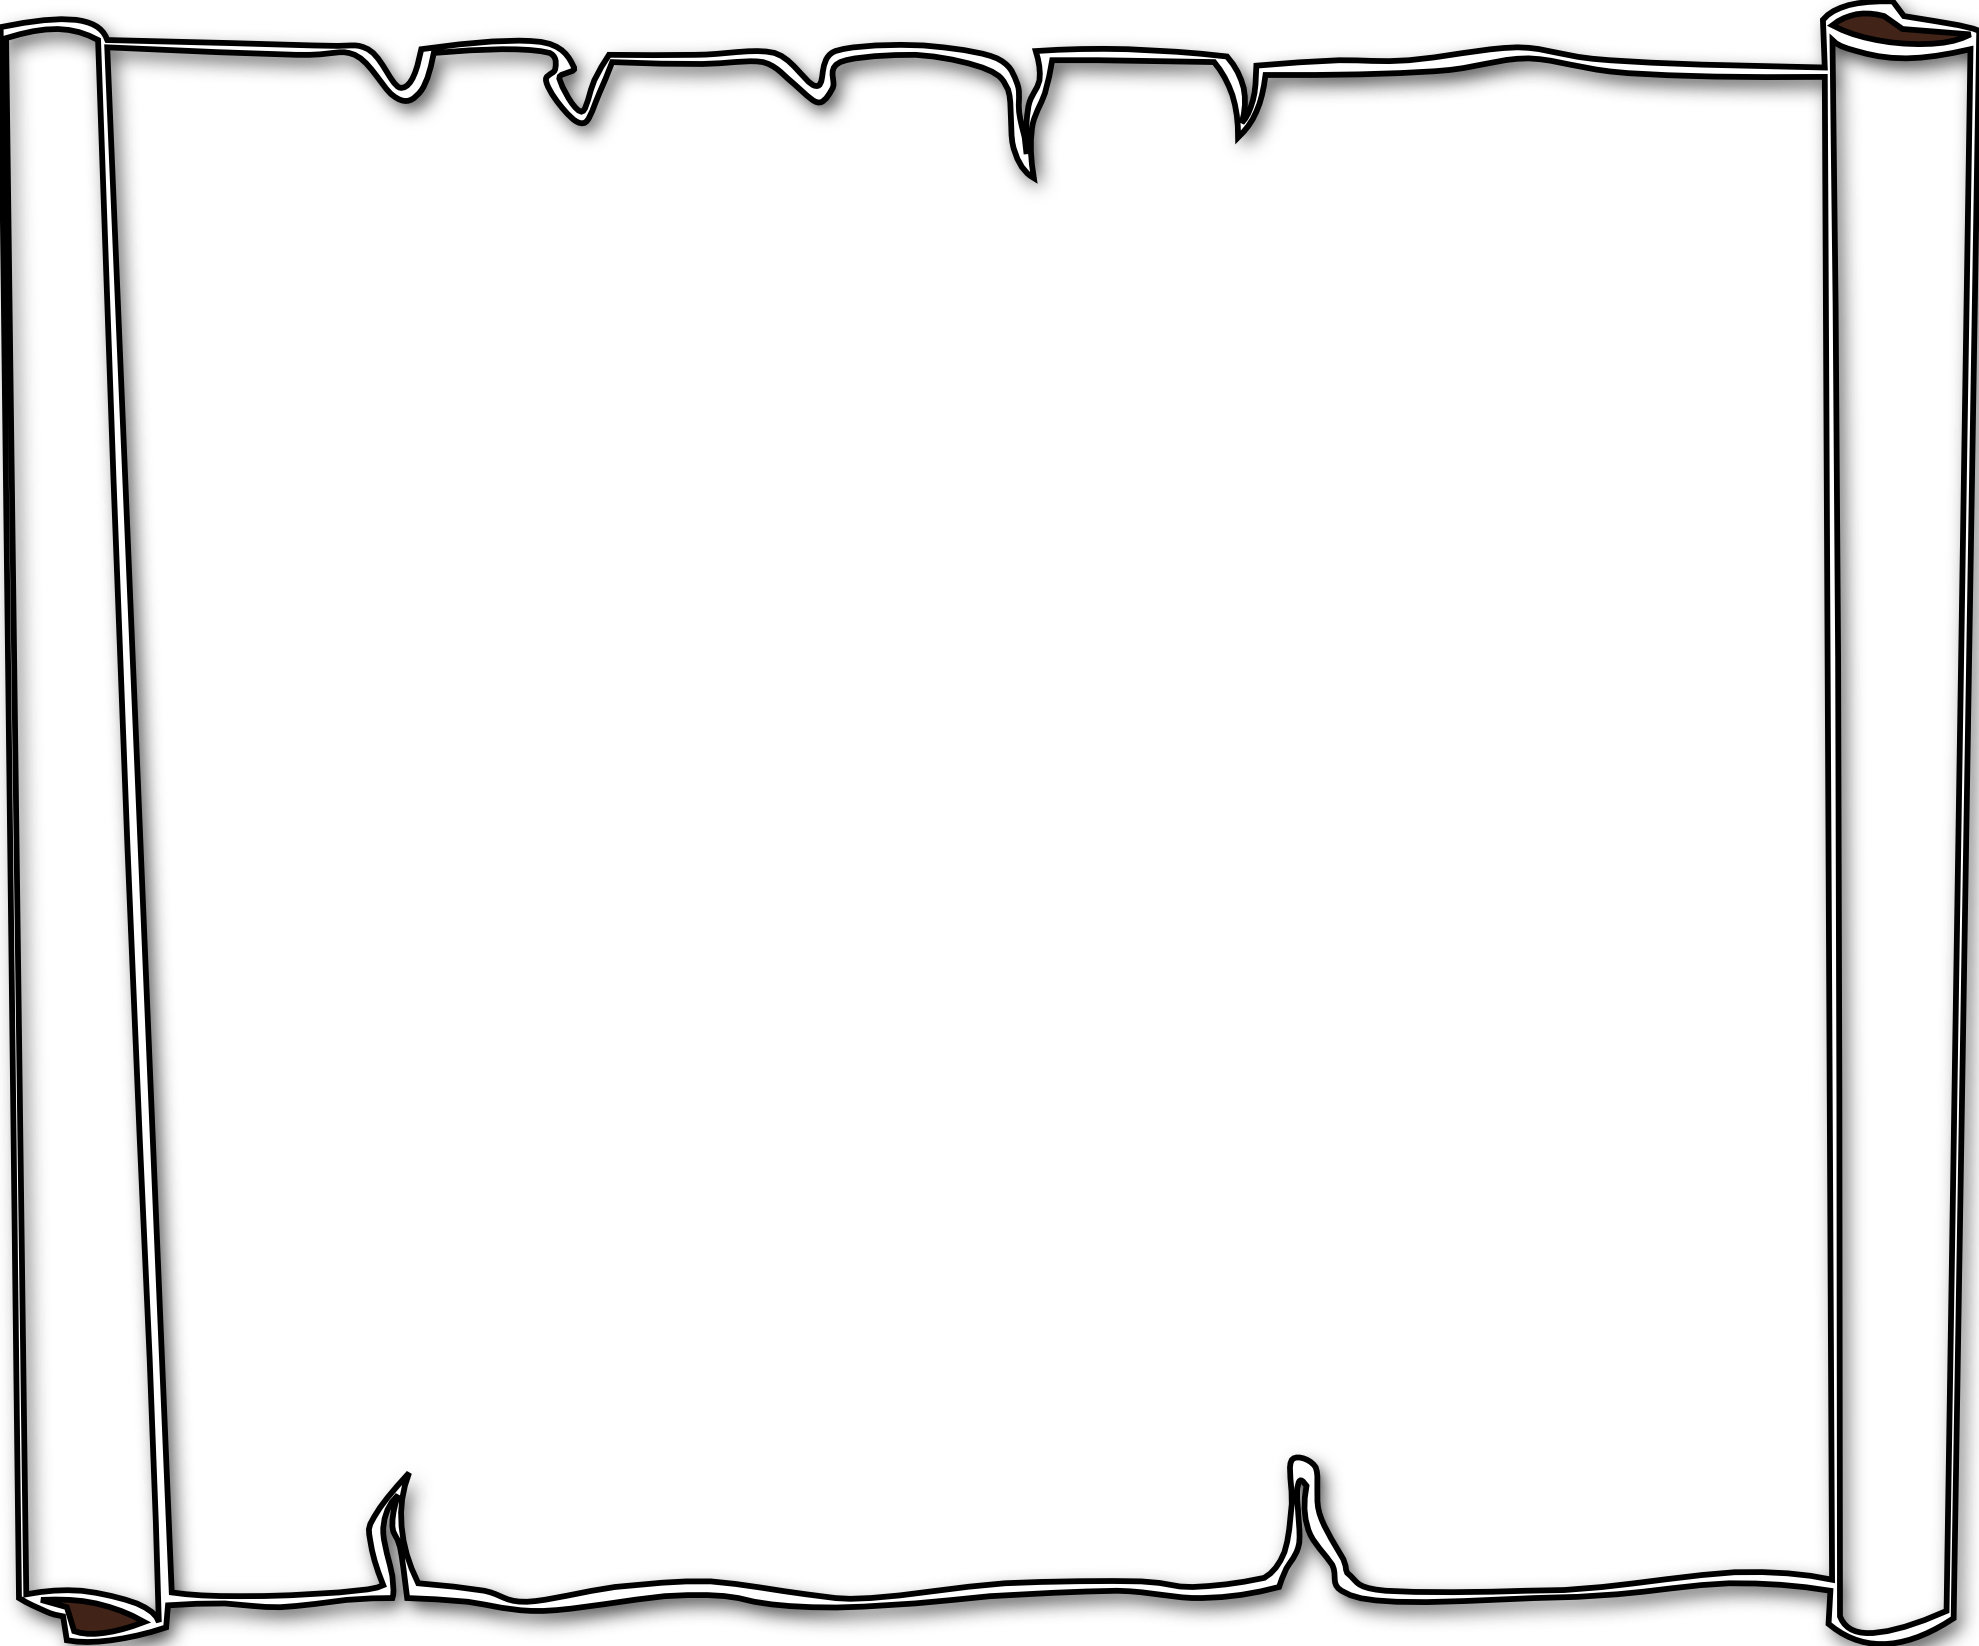 Line Art Card Design : Books border clipart black and white panda